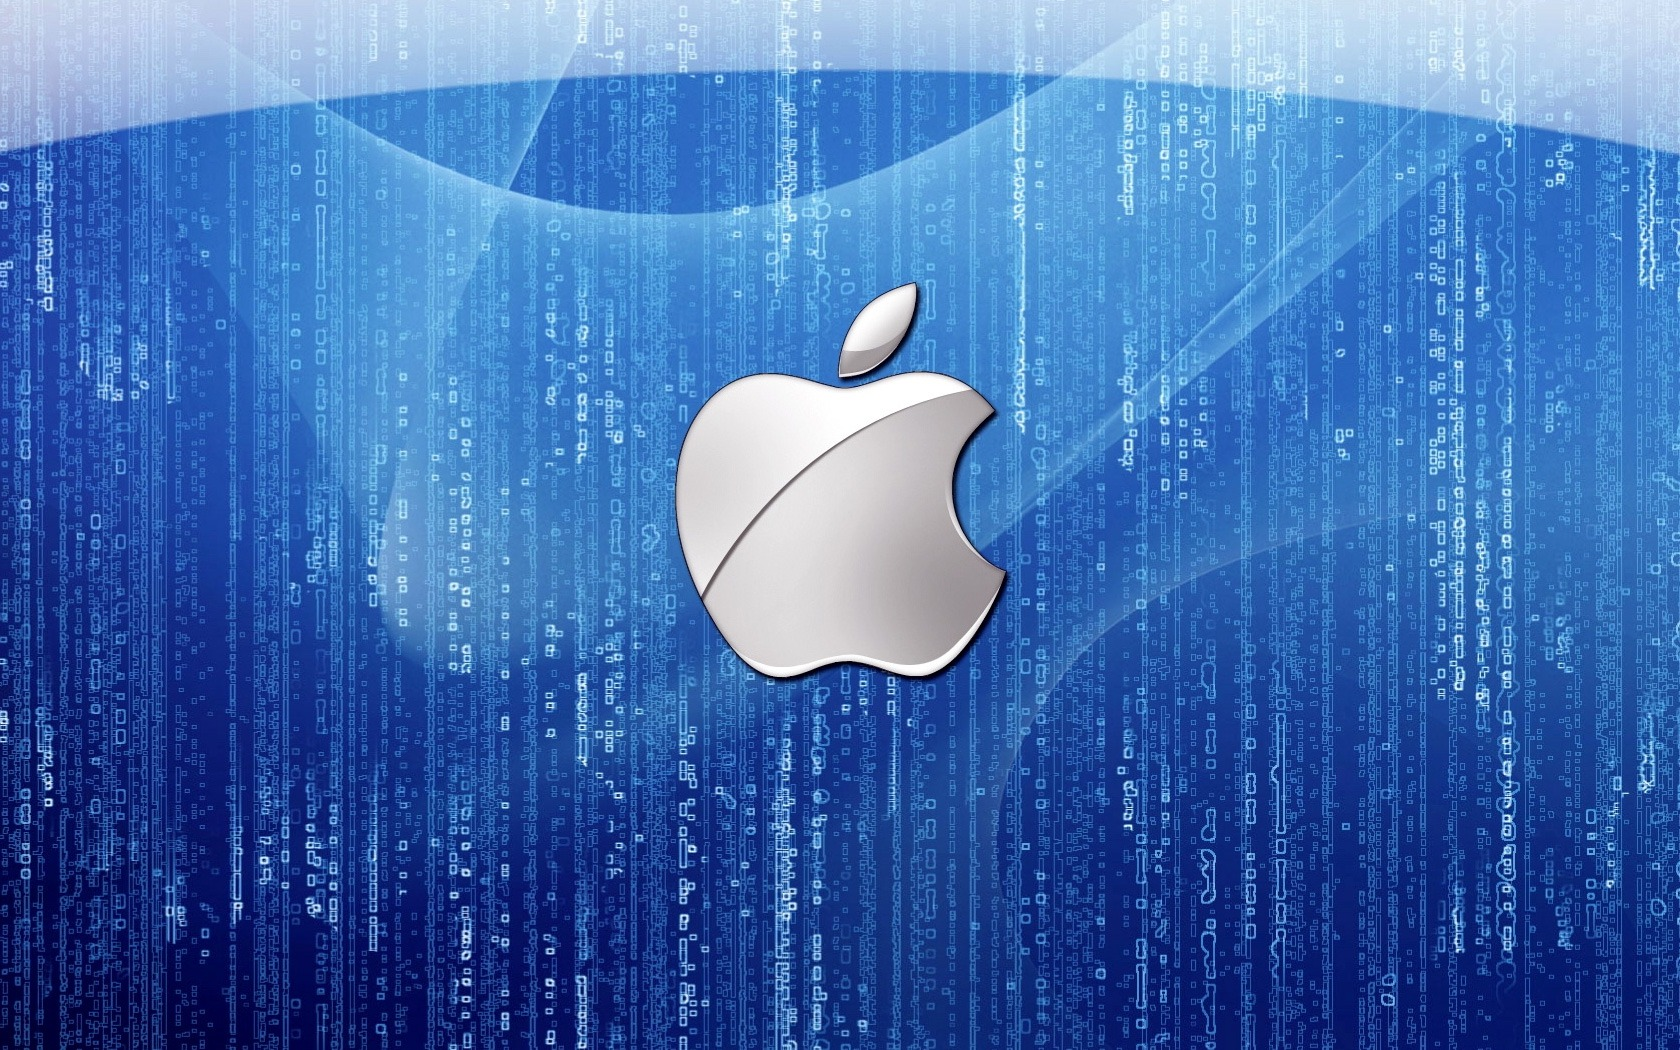 blue apple logo hd - photo #5